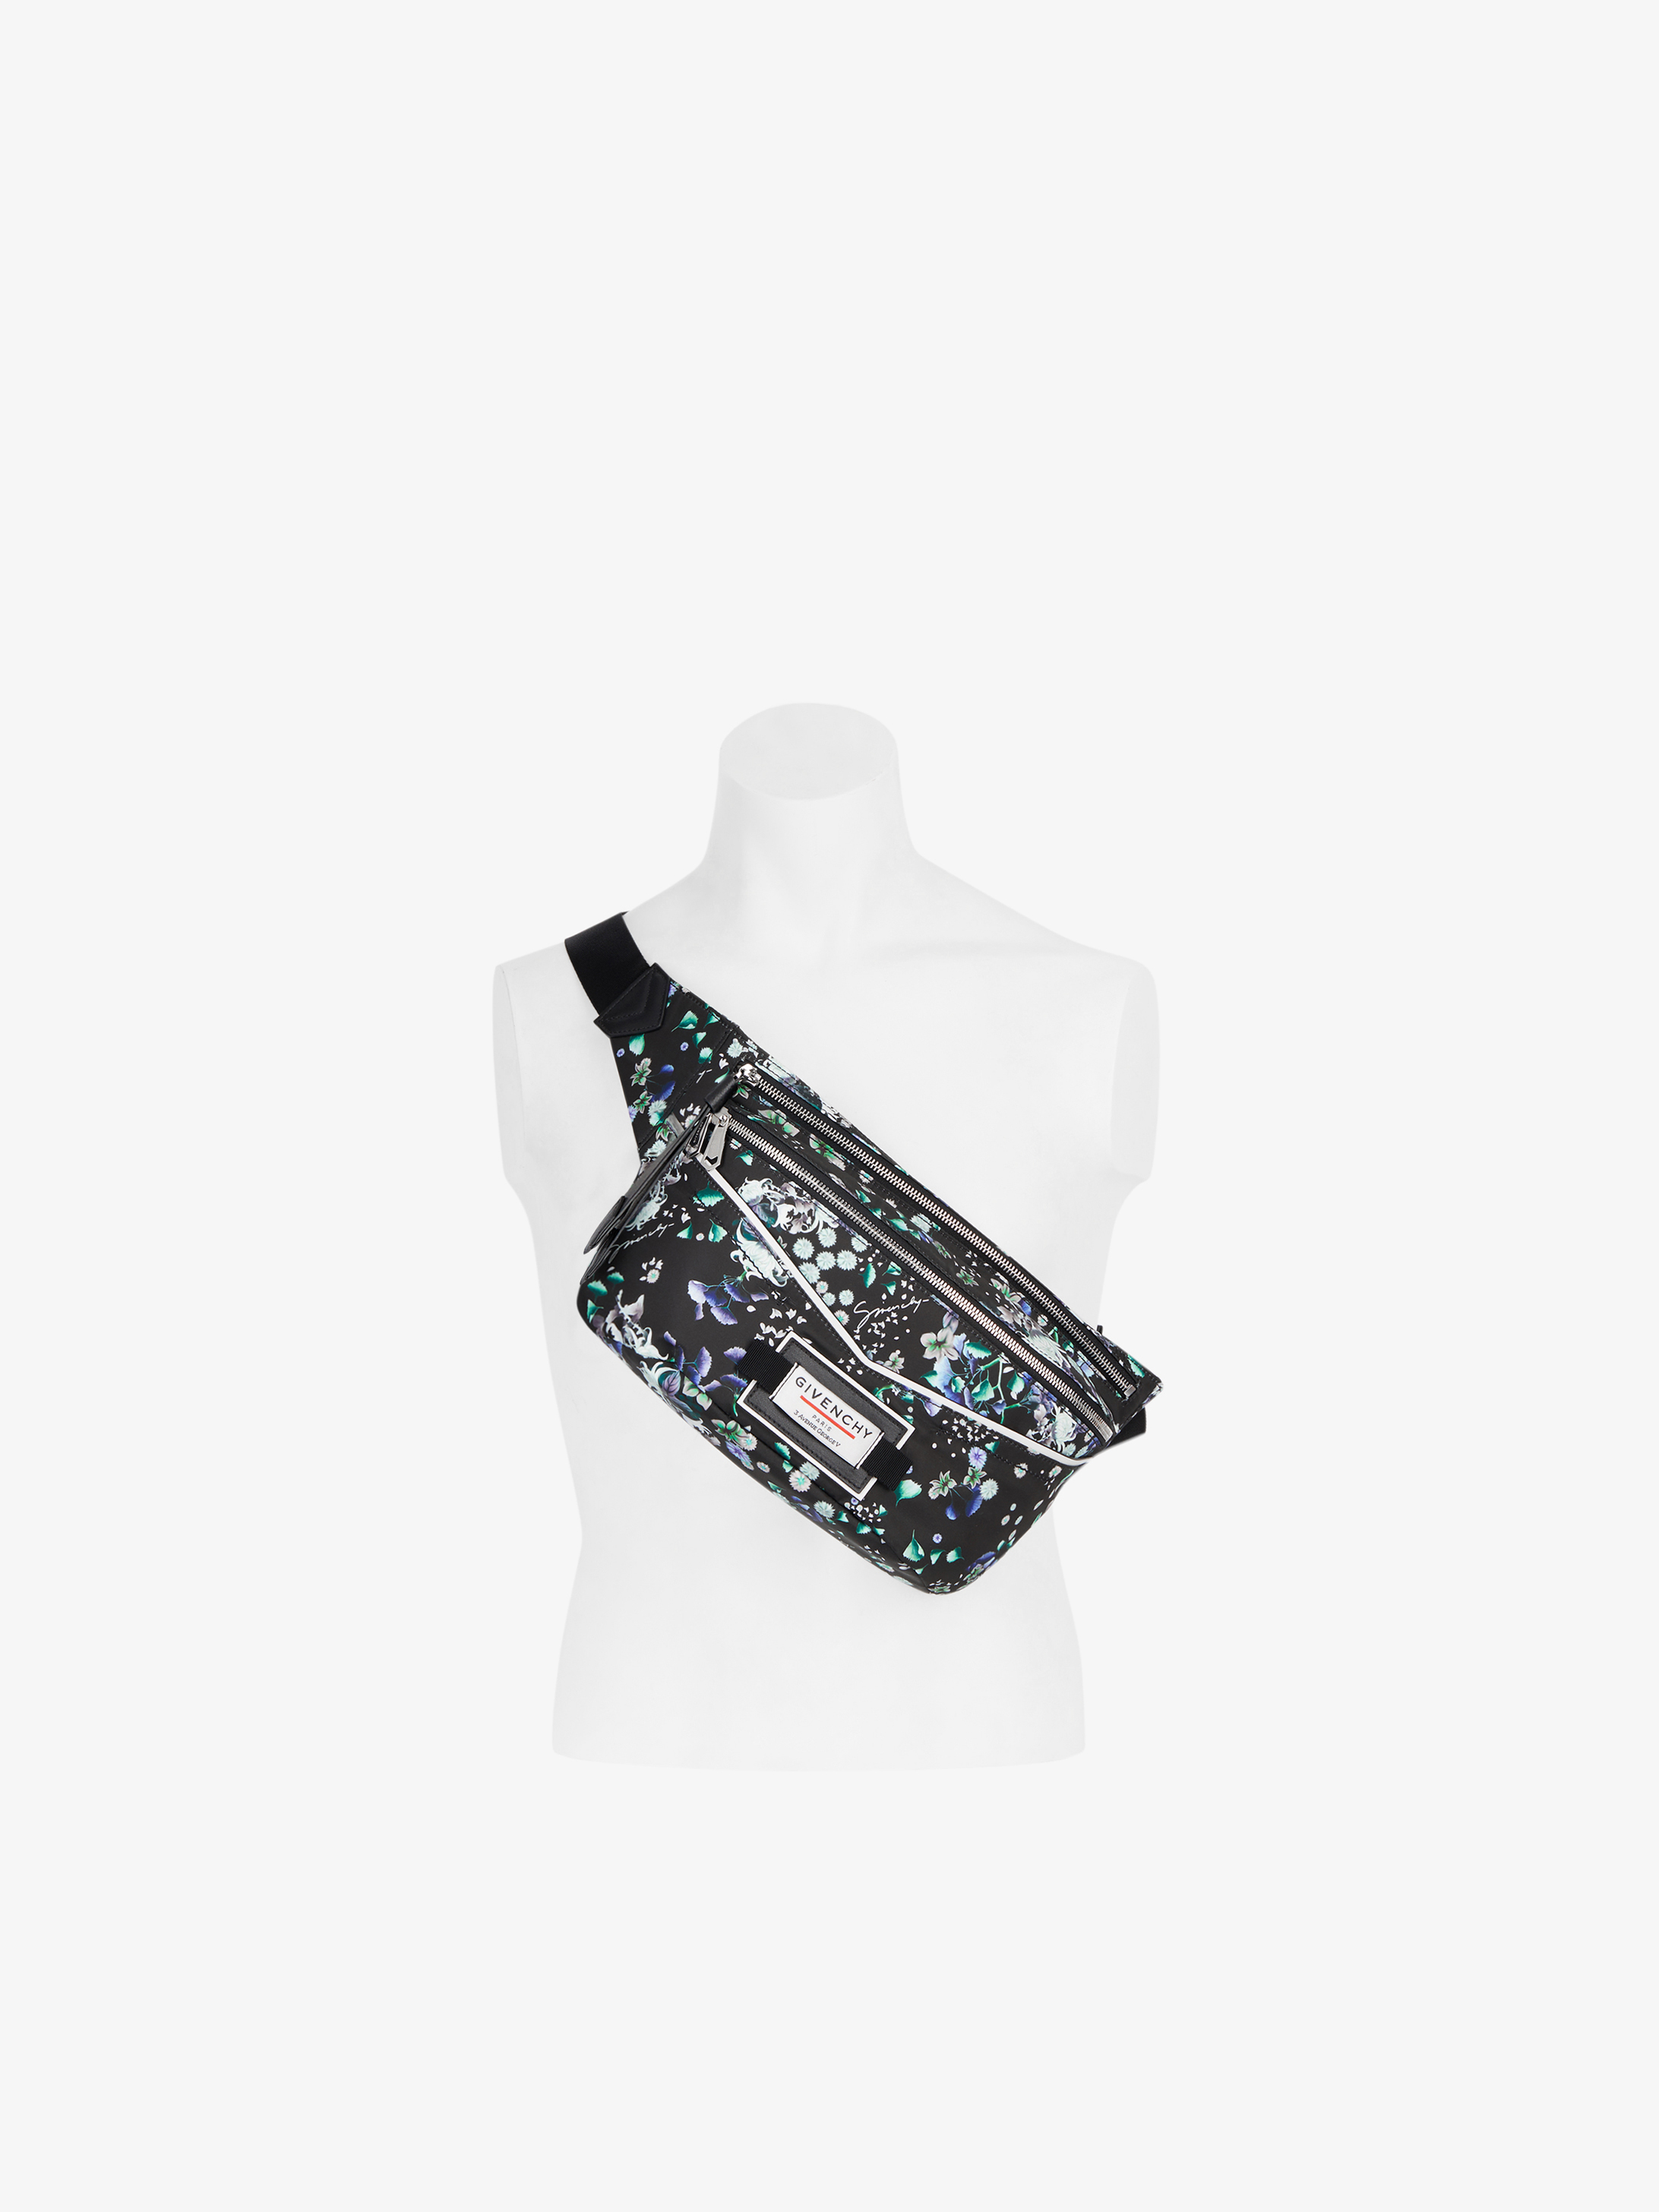 GIVENCHY Downtown floral printed bum bag